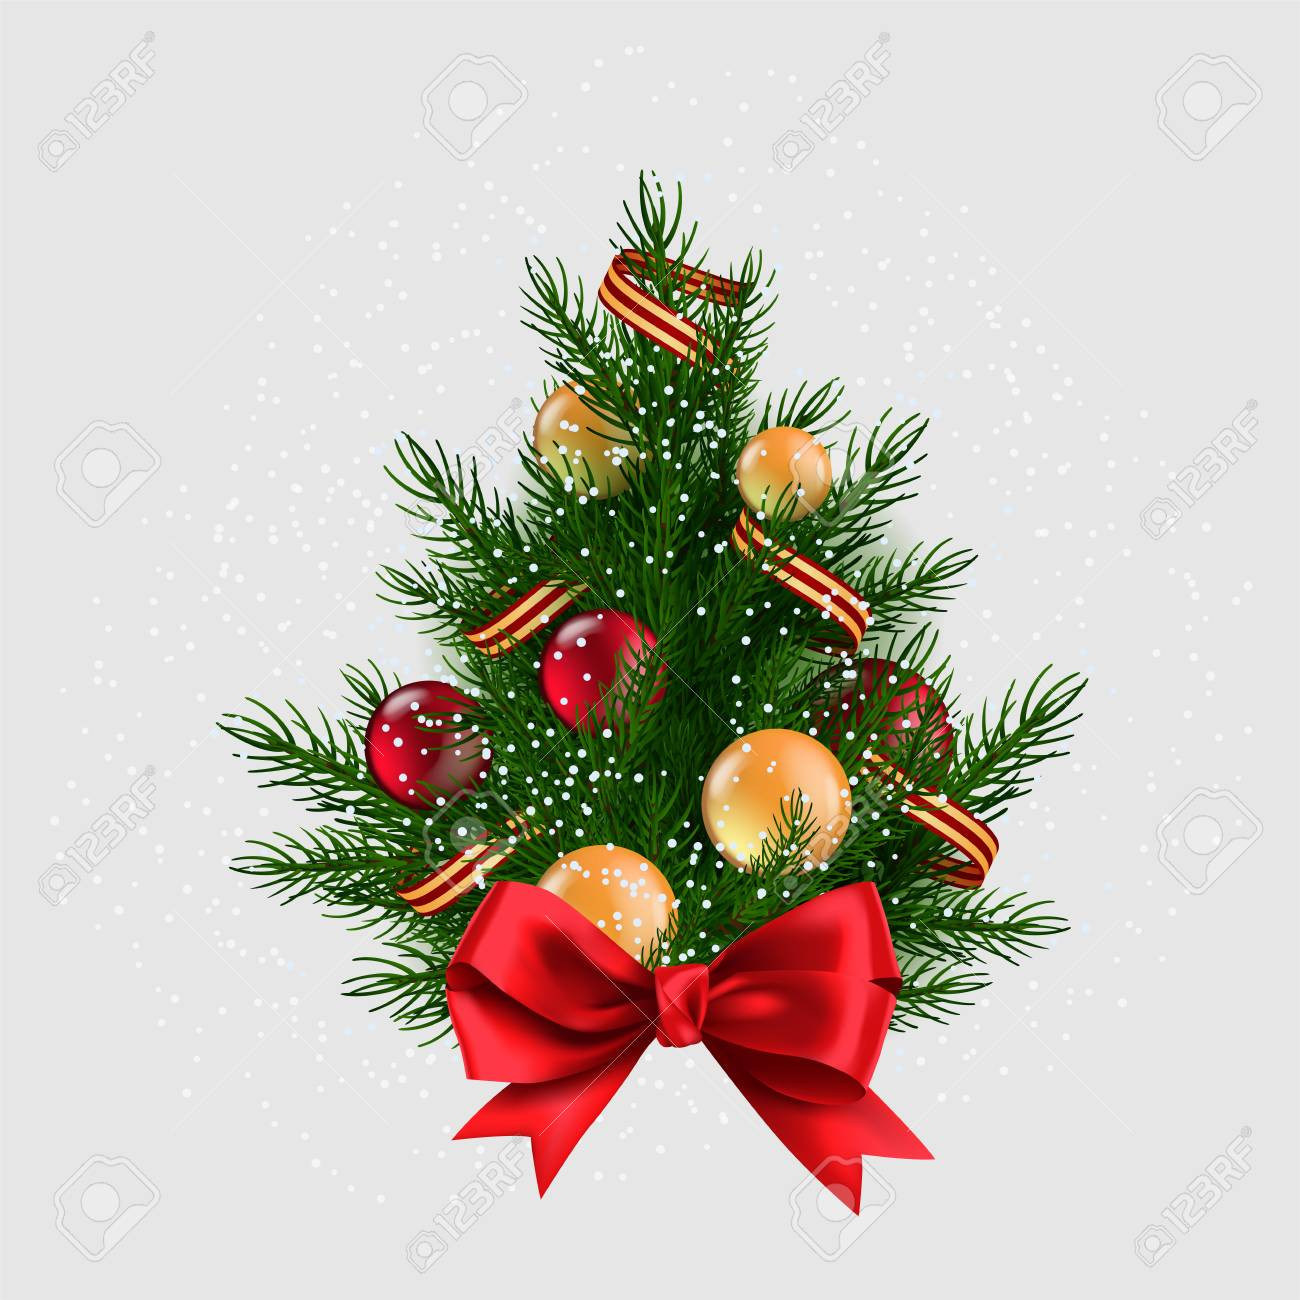 Realistic Christmas Tree With Snow Colorful Baubles An Ribbon Royalty Free Cliparts Vectors And Stock Illustration Image 126951961